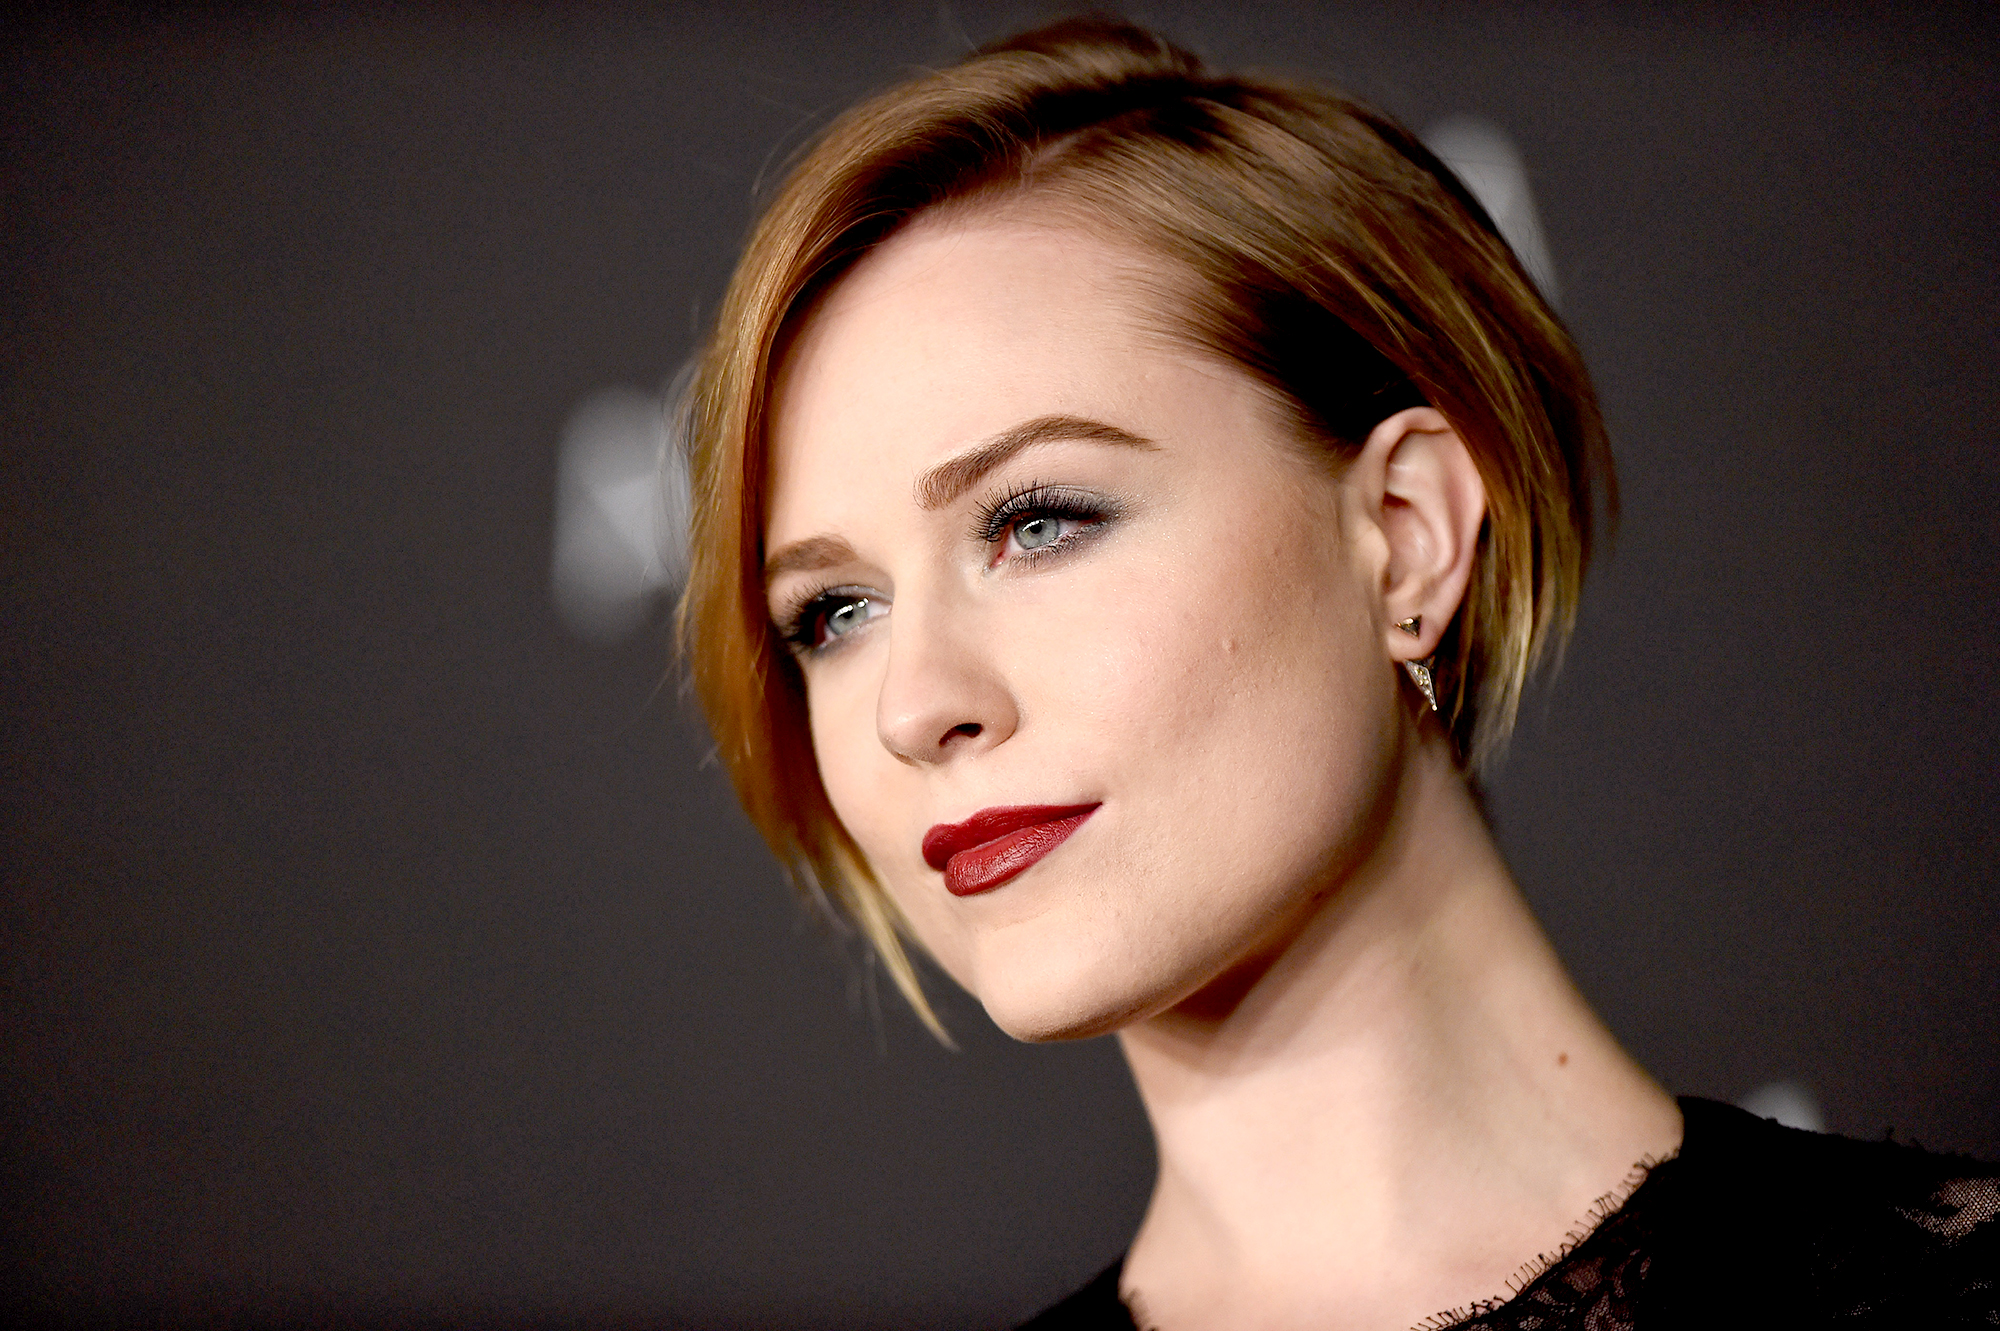 stars-that-survived-abuse - LOS ANGELES, CA – NOVEMBER 01: Actress Evan Rachel Wood attends the 2014 LACMA Art + Film Gala Honoring Barbara Kruger And Quentin Tarantino Presented By Gucci at LACMA on November 1, 2014 in Los Angeles, California. (Photo by Axelle/Bauer-Griffin/FilmMagic)